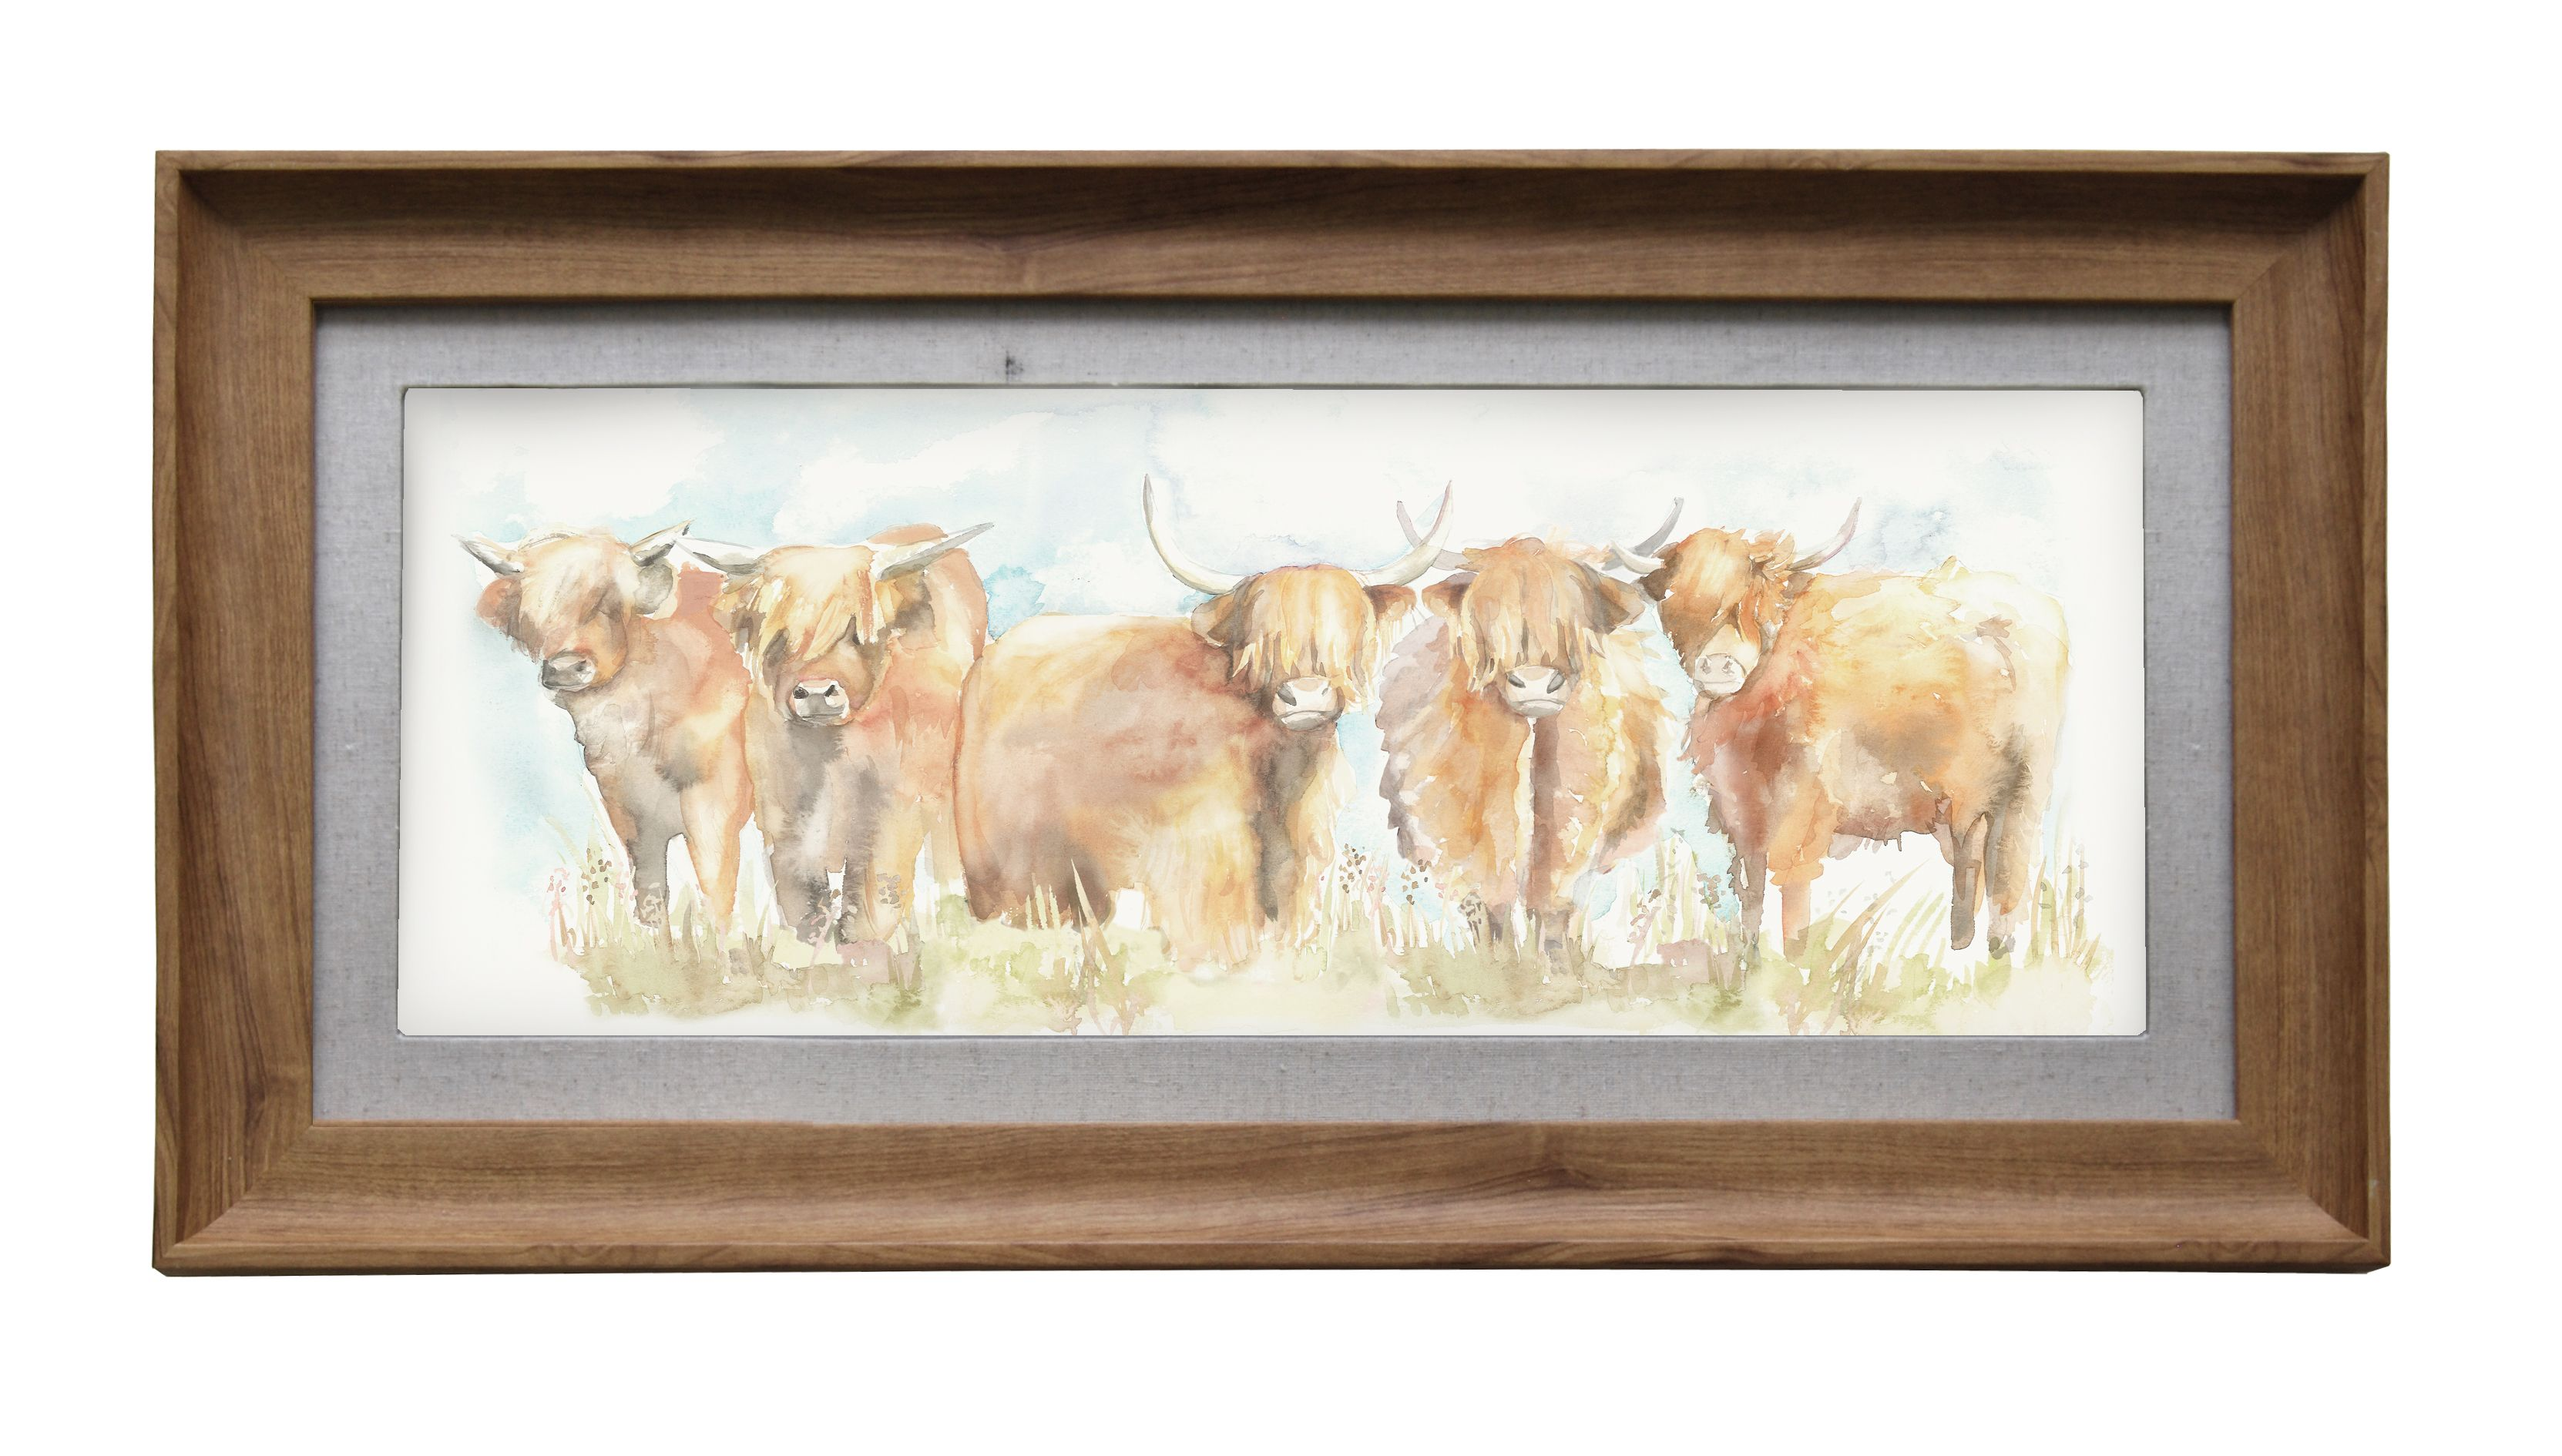 Highland Cattle Wall Art 72cmLx36cmH